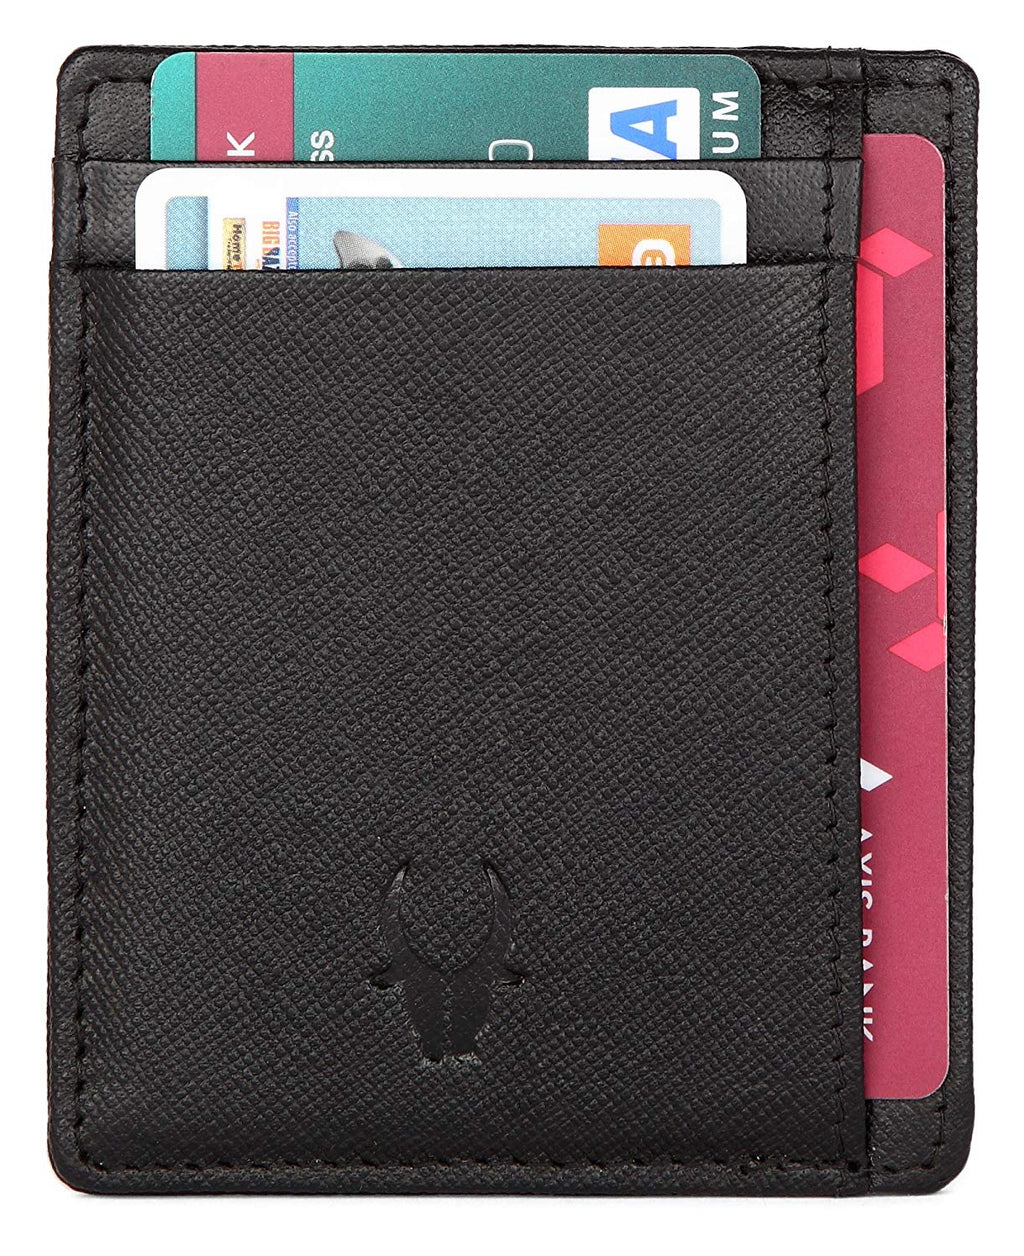 WildHorn Black Credit Card Holder - WILDHORN